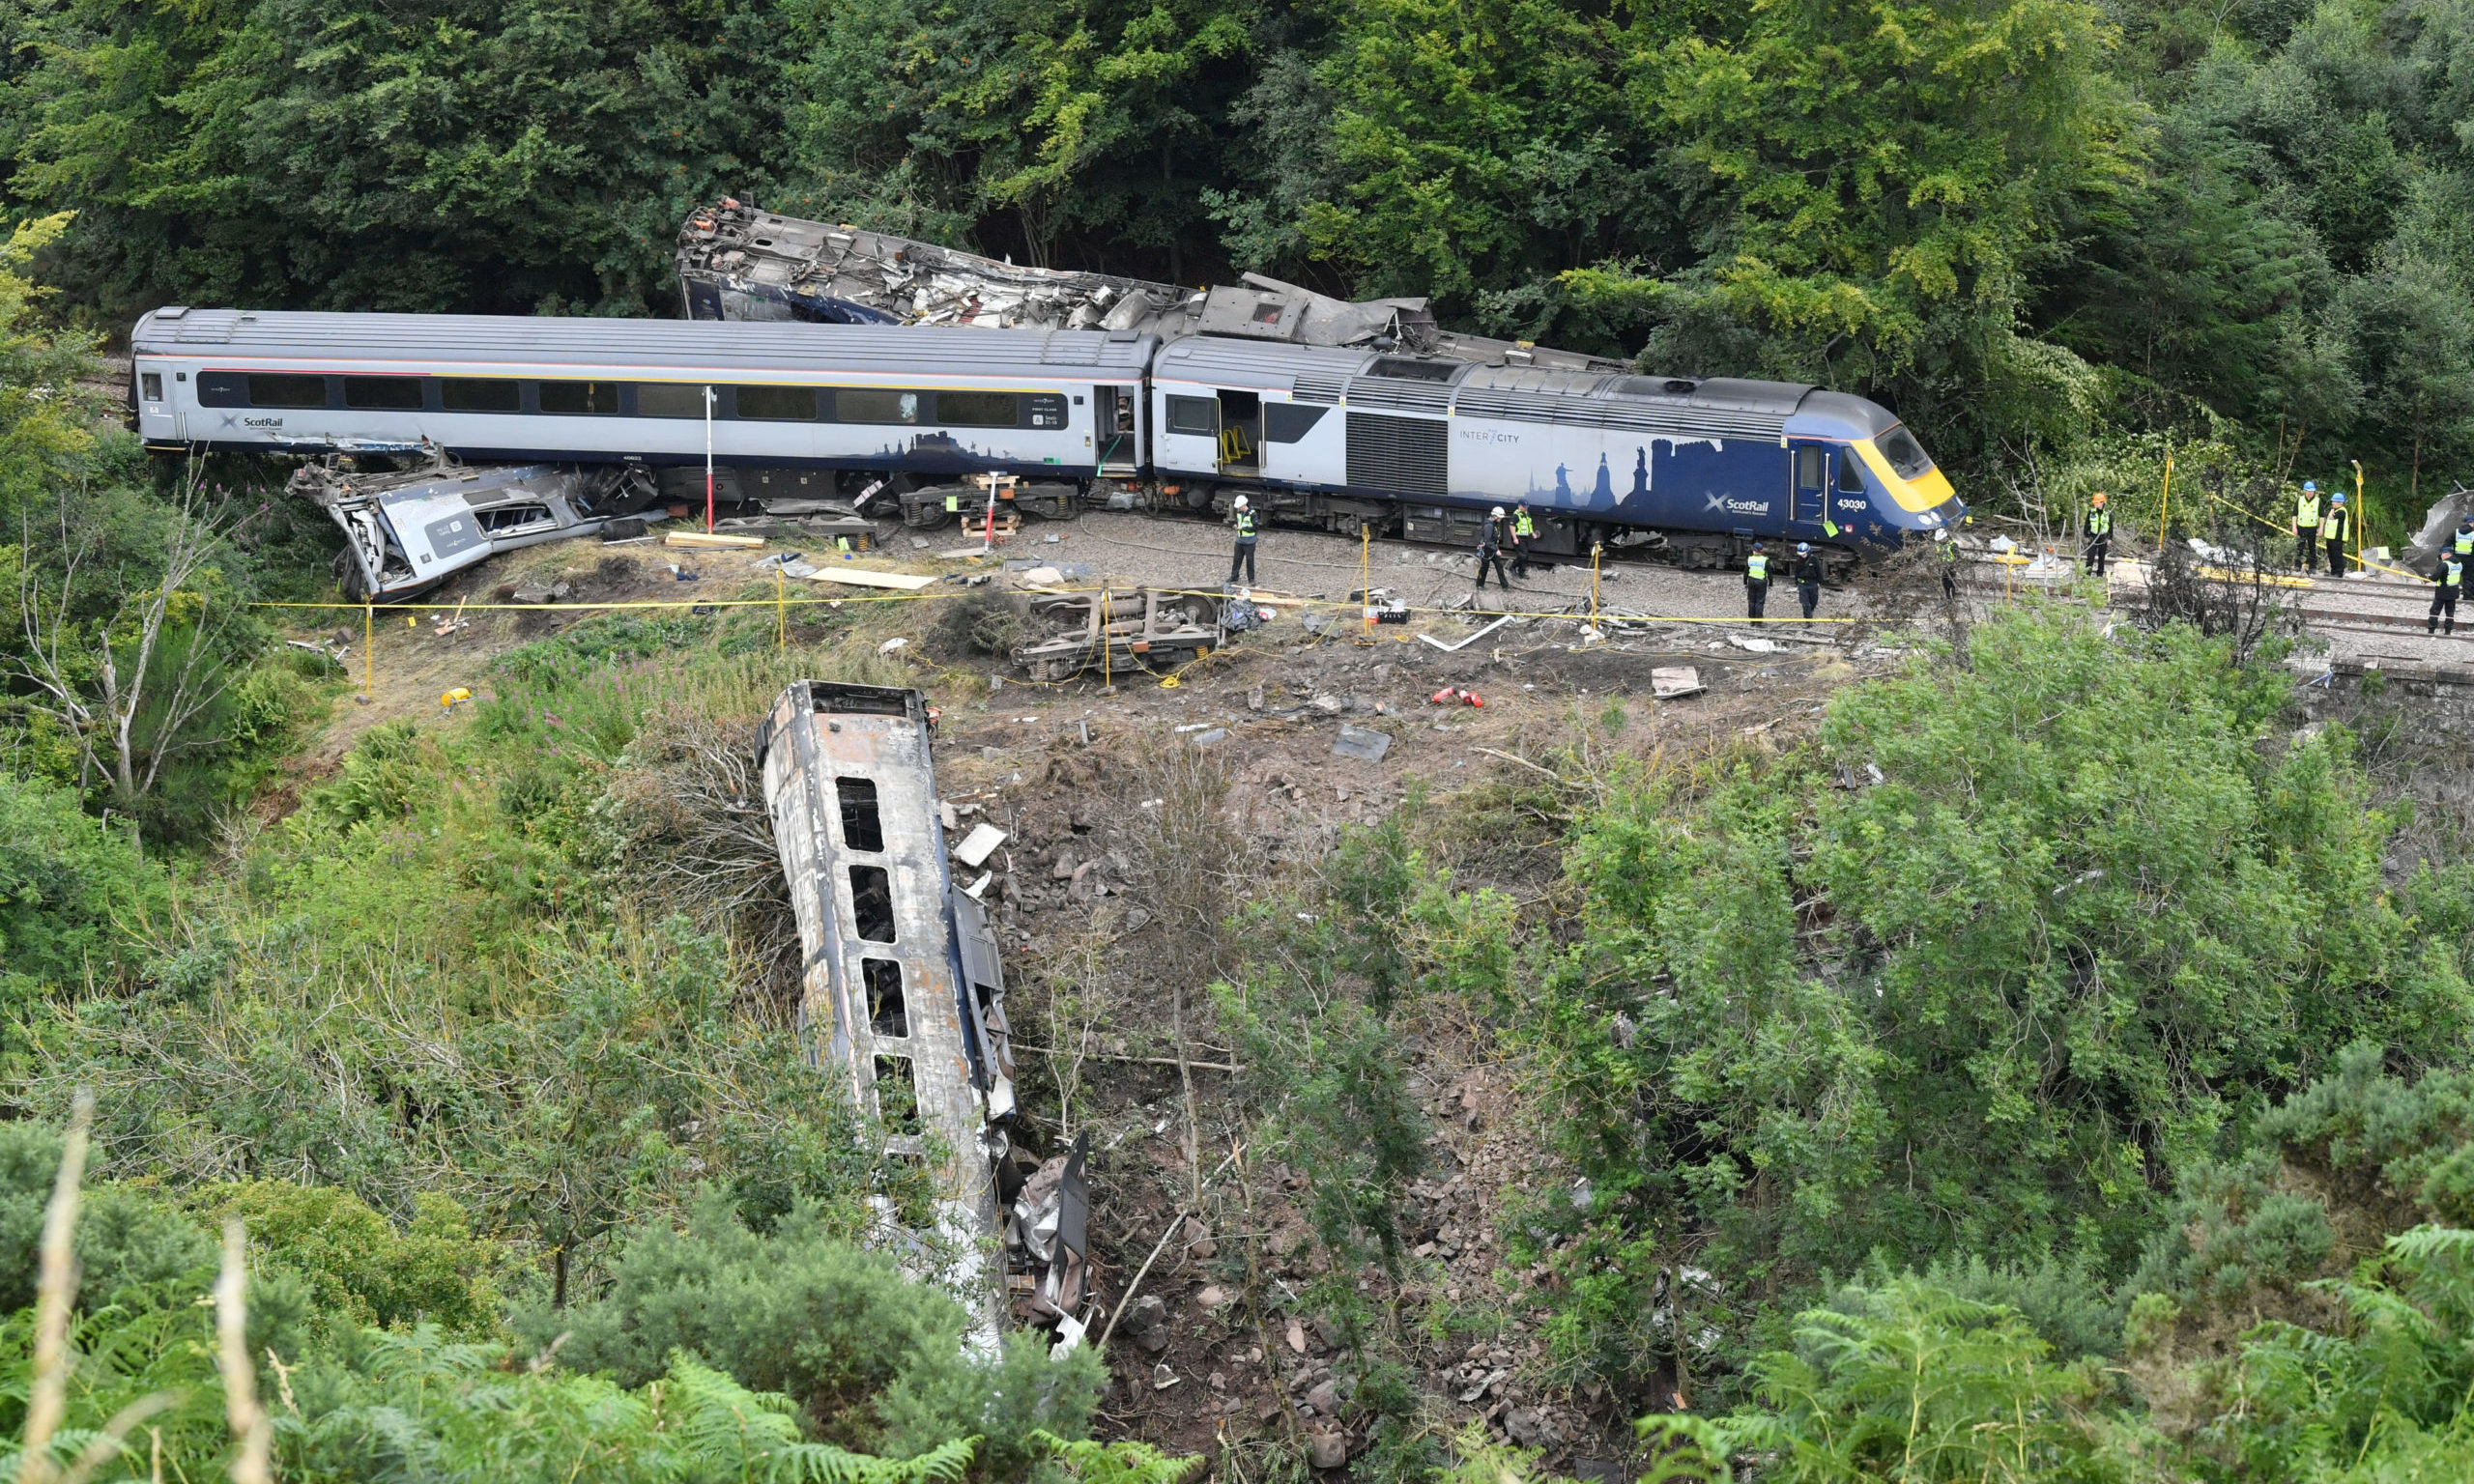 The scene near Stonehaven, Aberdeenshire, following the derailment of the ScotRail train which cost the lives of three people on Wednesday.